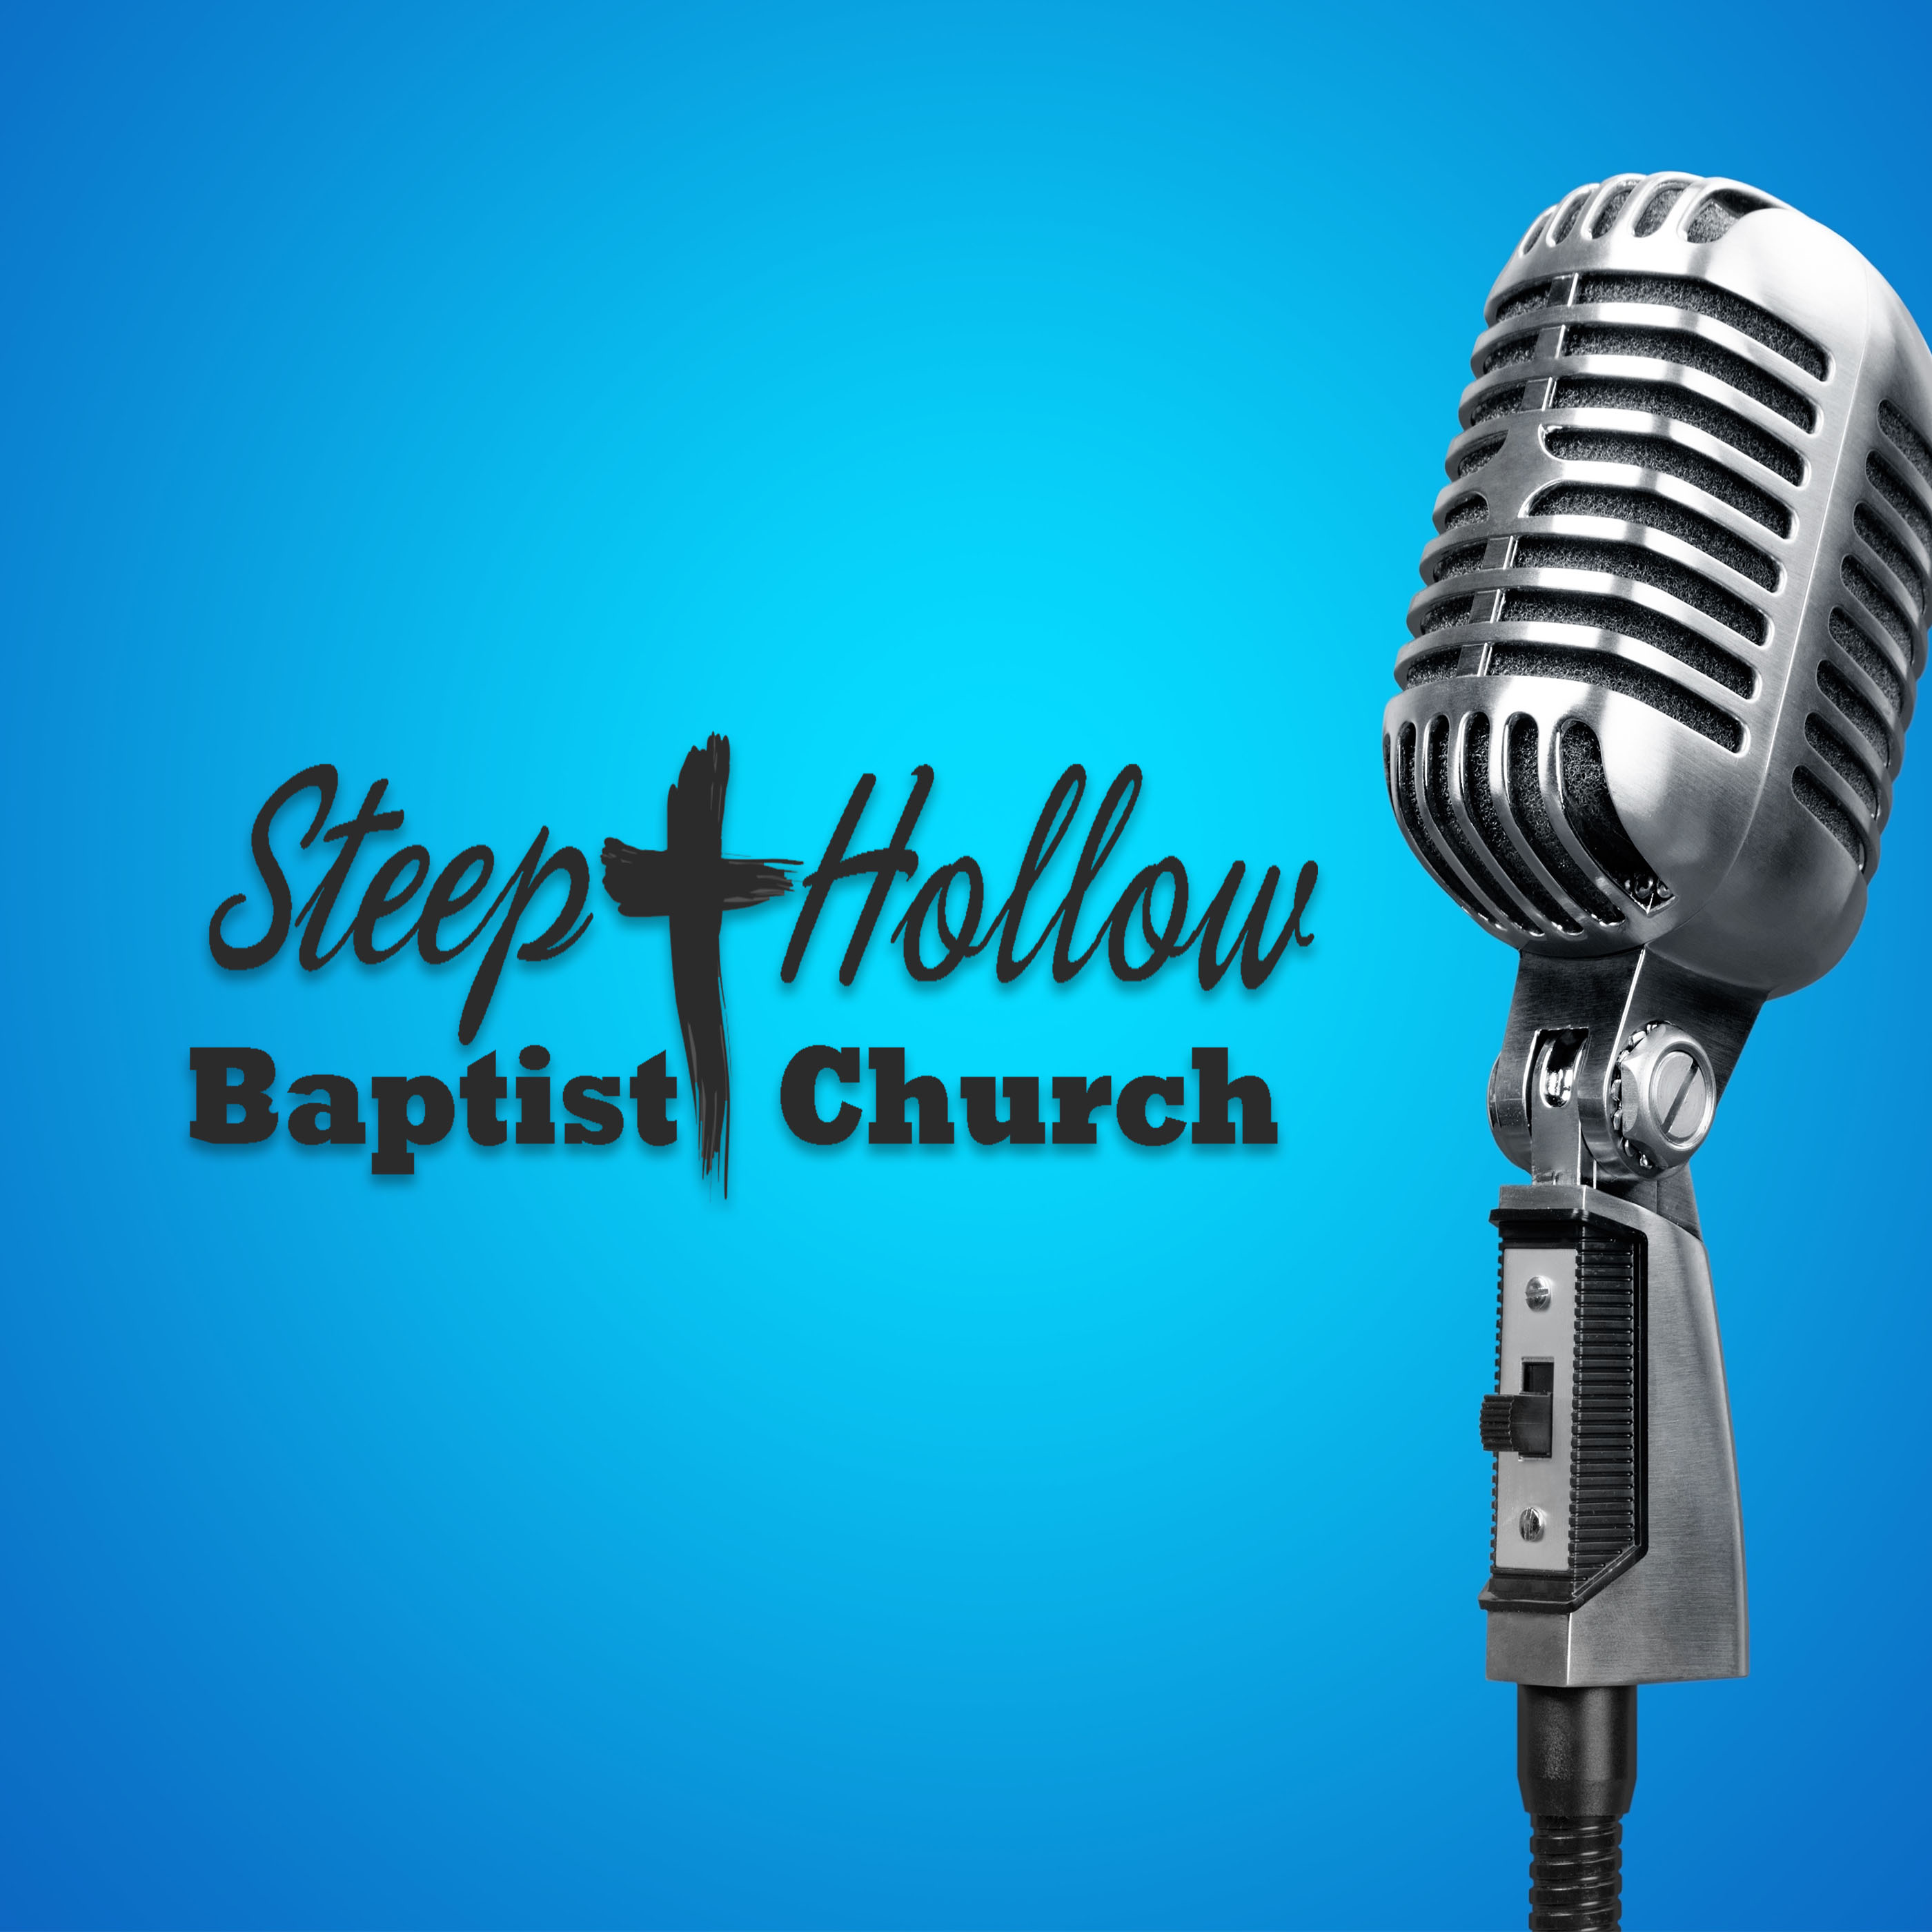 Steep Hollow Baptist Church